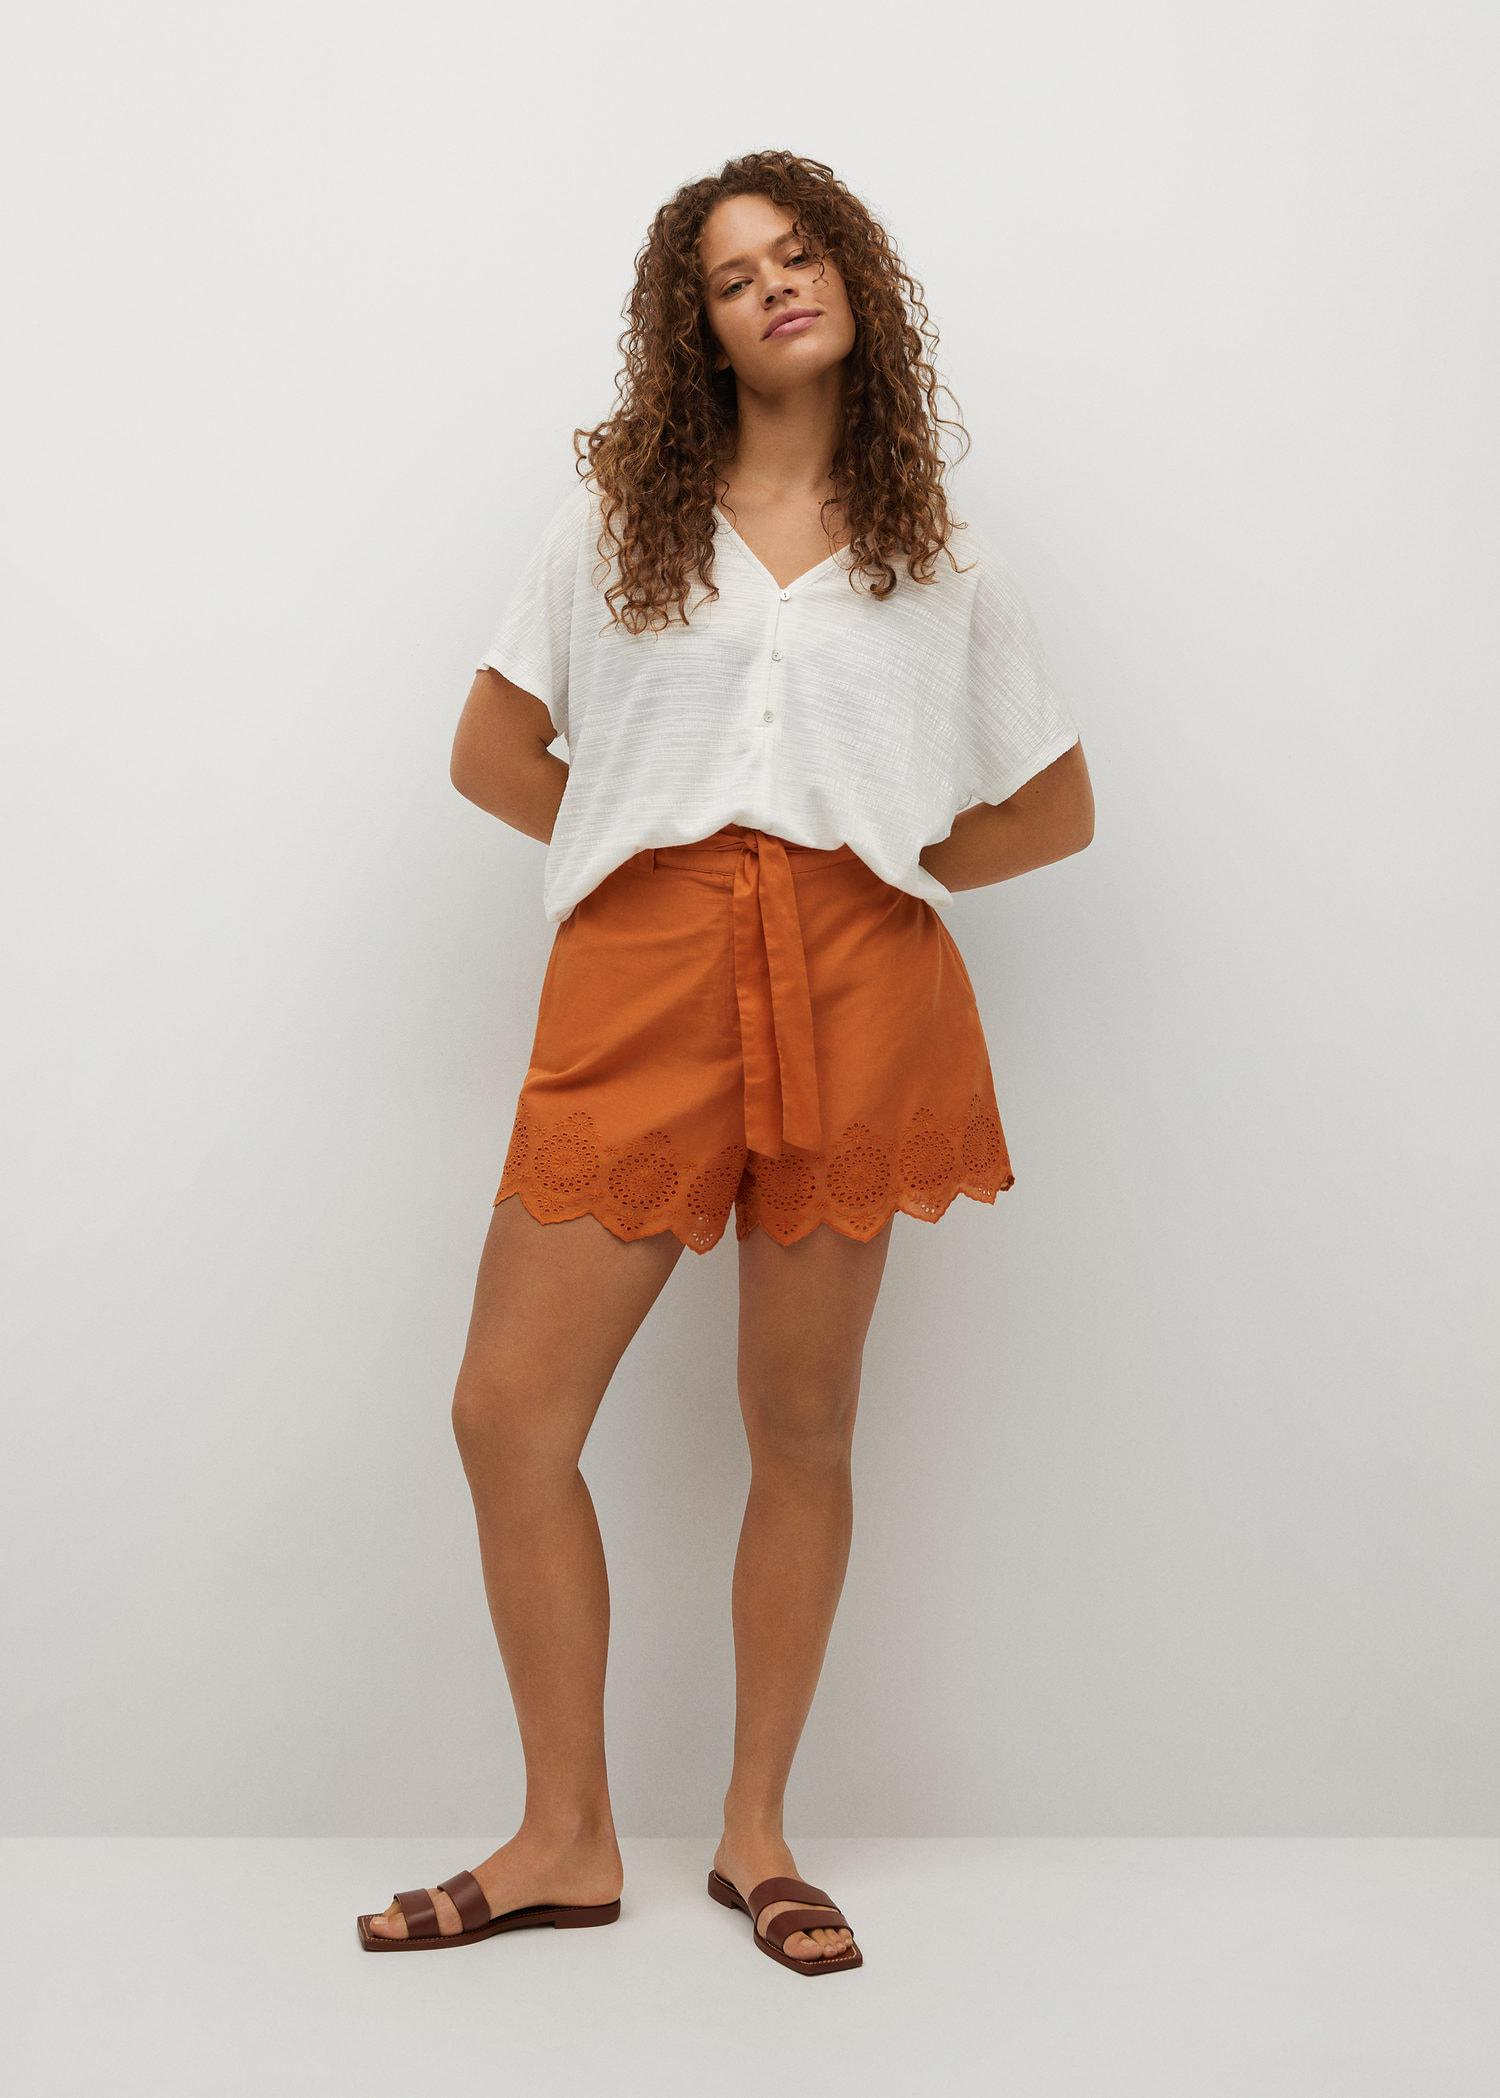 Oversized t-shirt with buttons